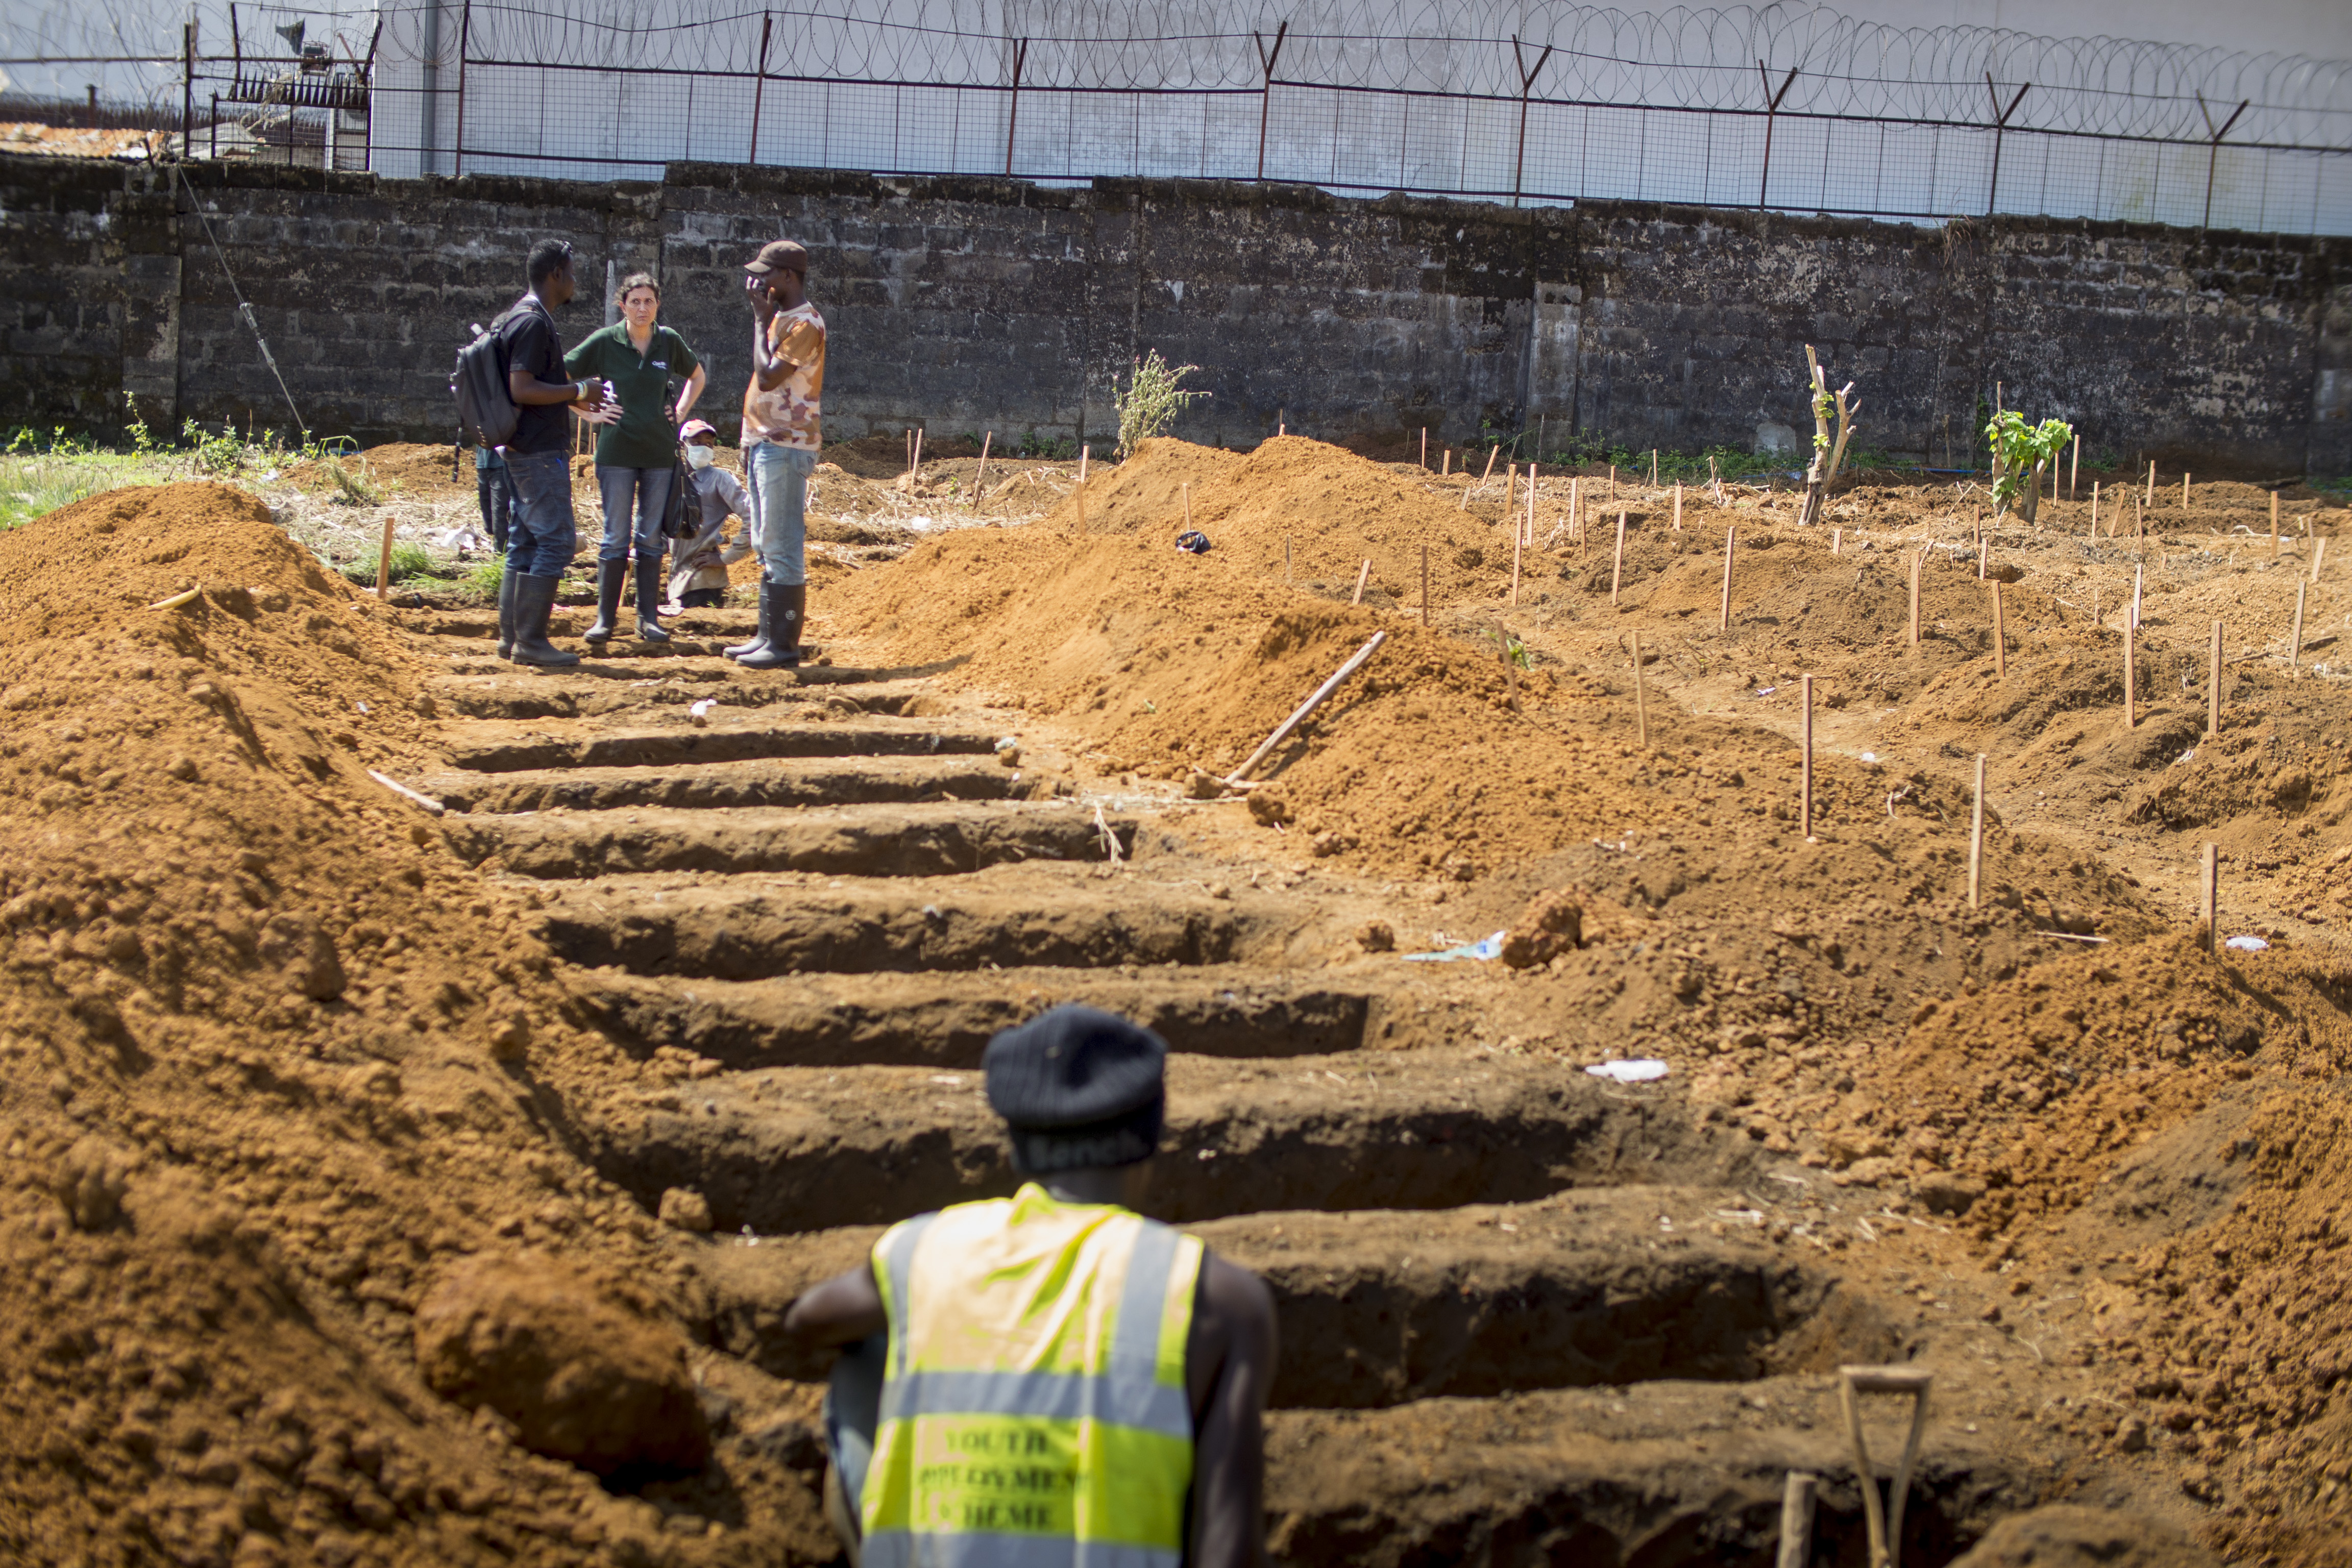 Fiona McLysaght, Concern Worldwide's Country Director for Sierra Leone, talks with members of Concern's burial team at Kingtom cemetery in Freetown.